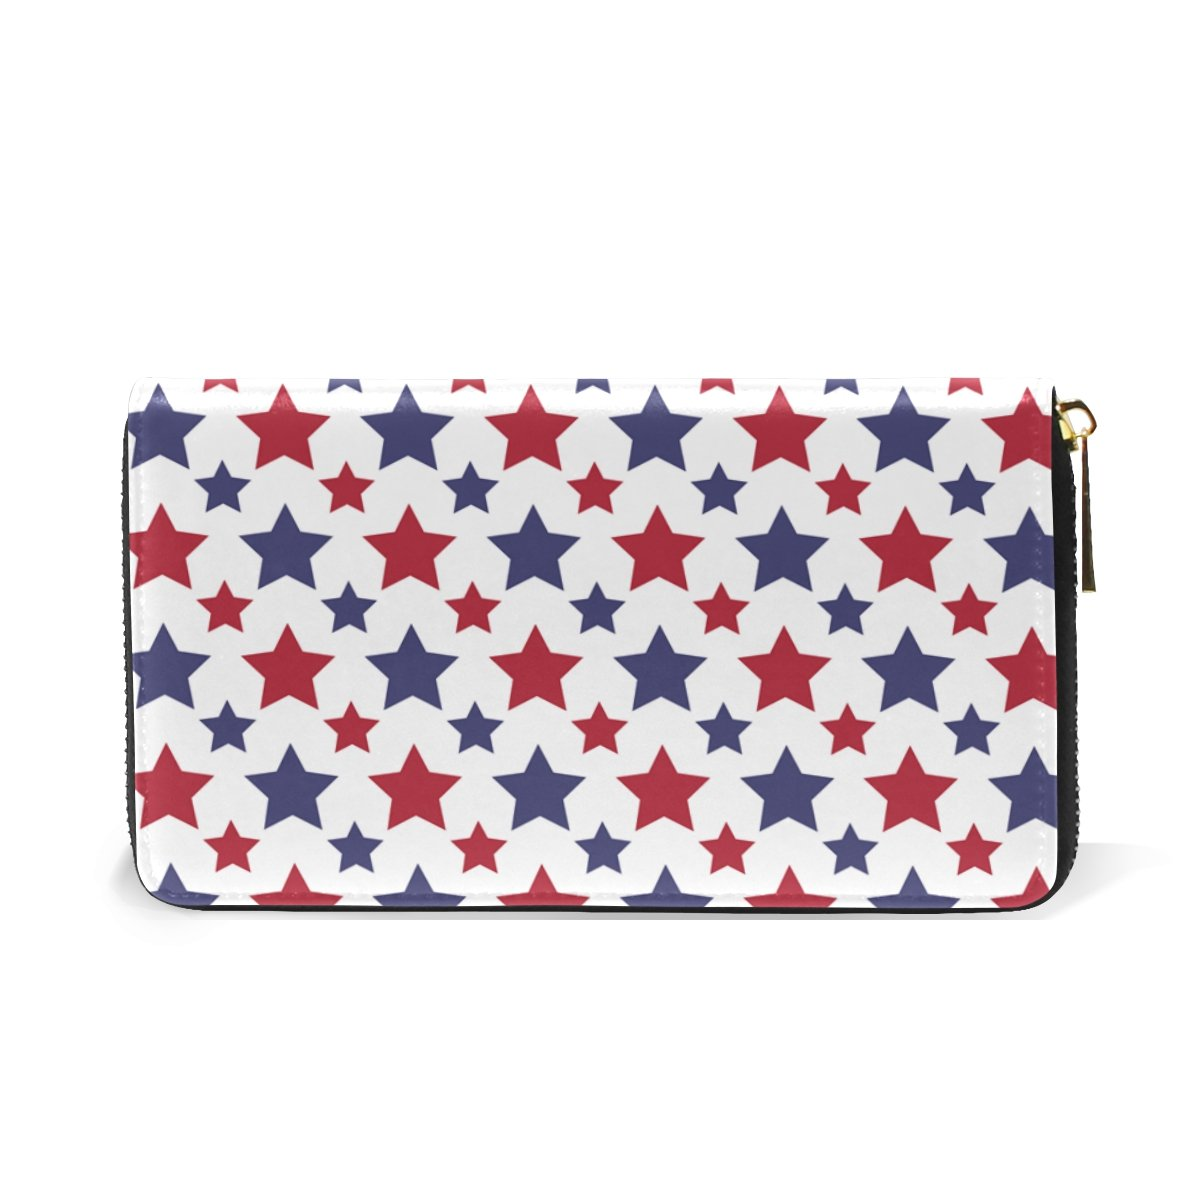 MAPOLO Red Blue Stars Womens Clutch Purses Organizer And Handbags Zip Around Wallet